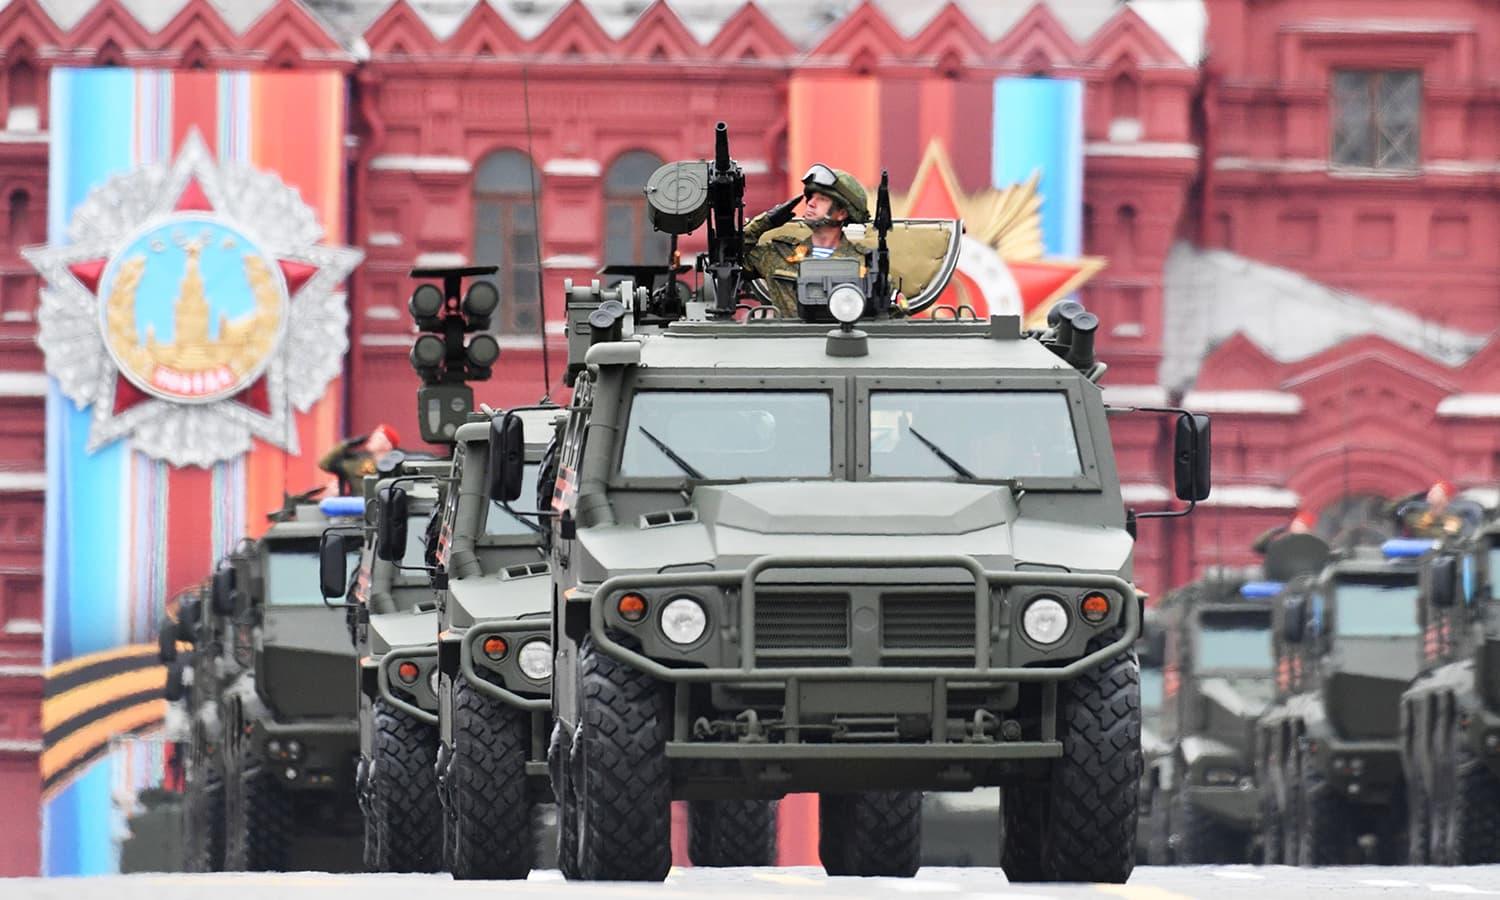 A Tigr all-terrain infantry mobility vehicle rides through Red Square. -AFP